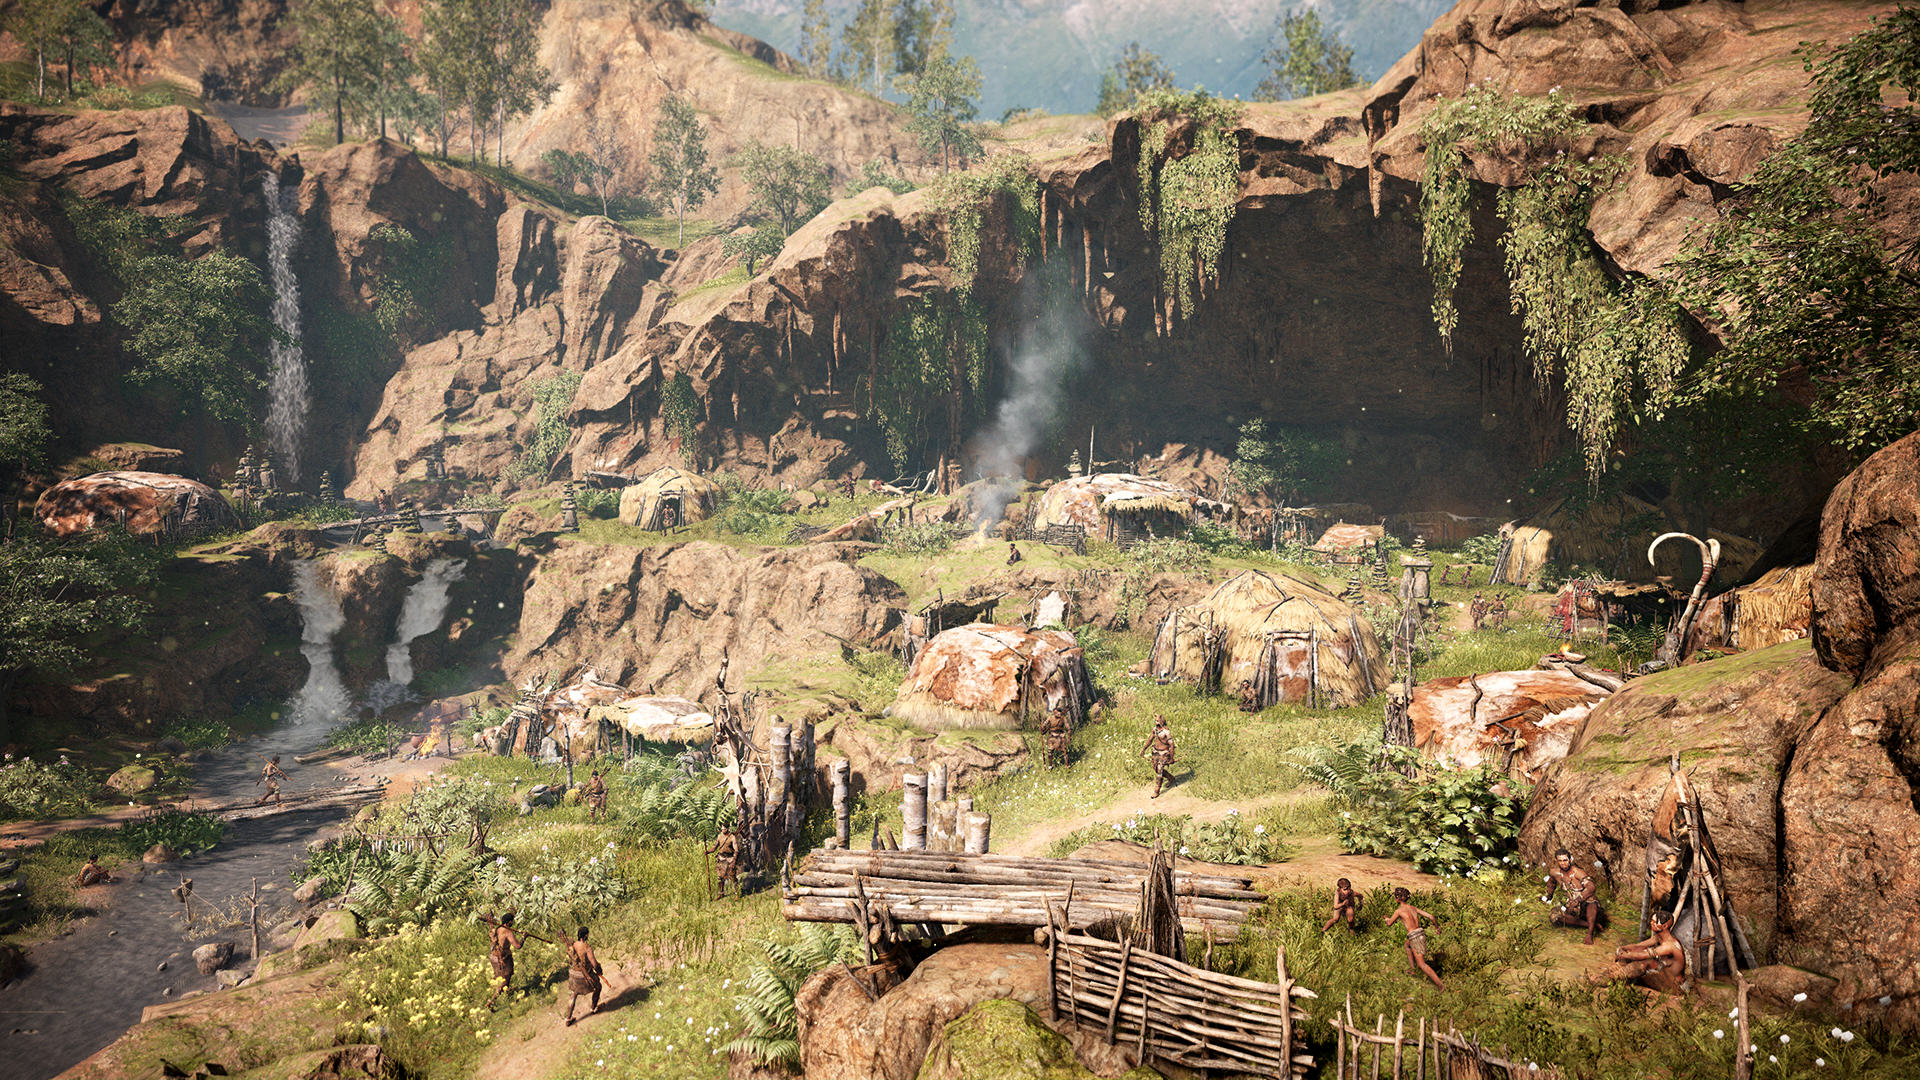 FCP 08 Village Complete Screenshots PREVIEW PR 160126 6pm CET 1453716689 An Exclusive Look At Far Cry Primal Ahead Of Release Day